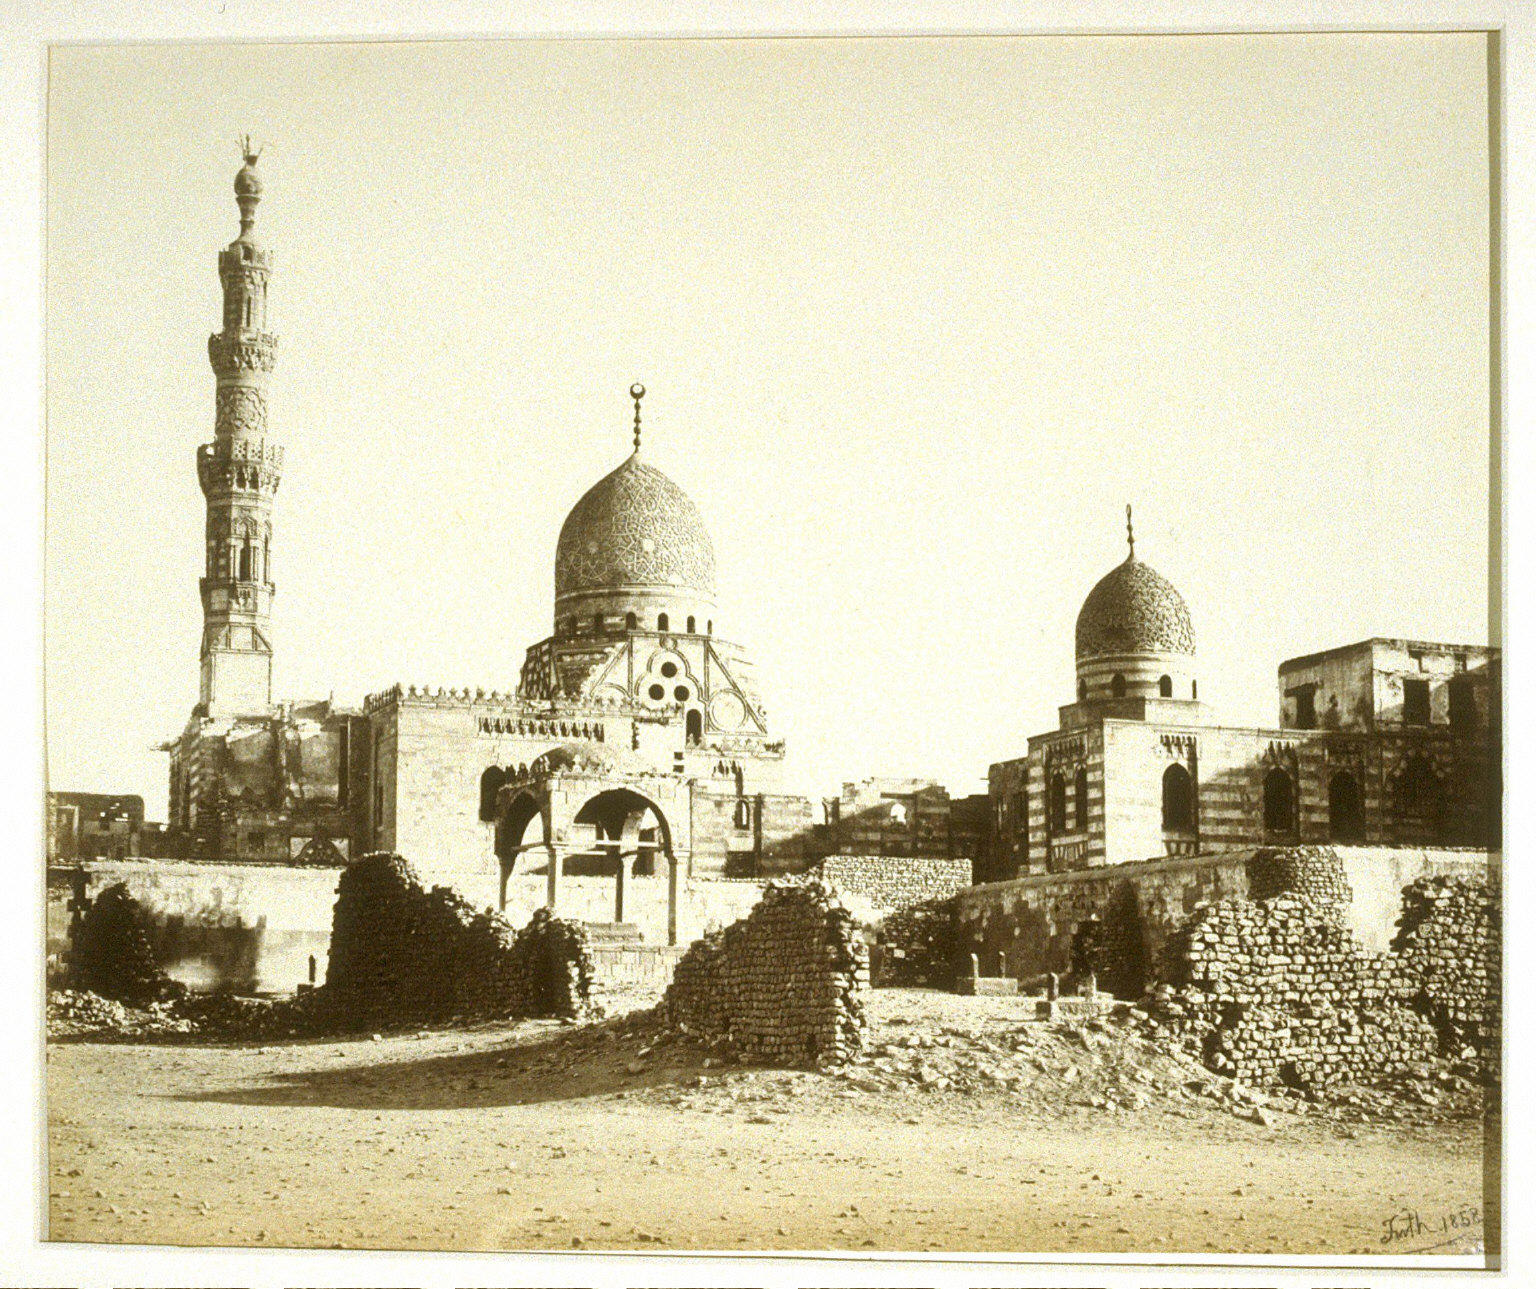 Cairo: The Mosque of Kaitbey